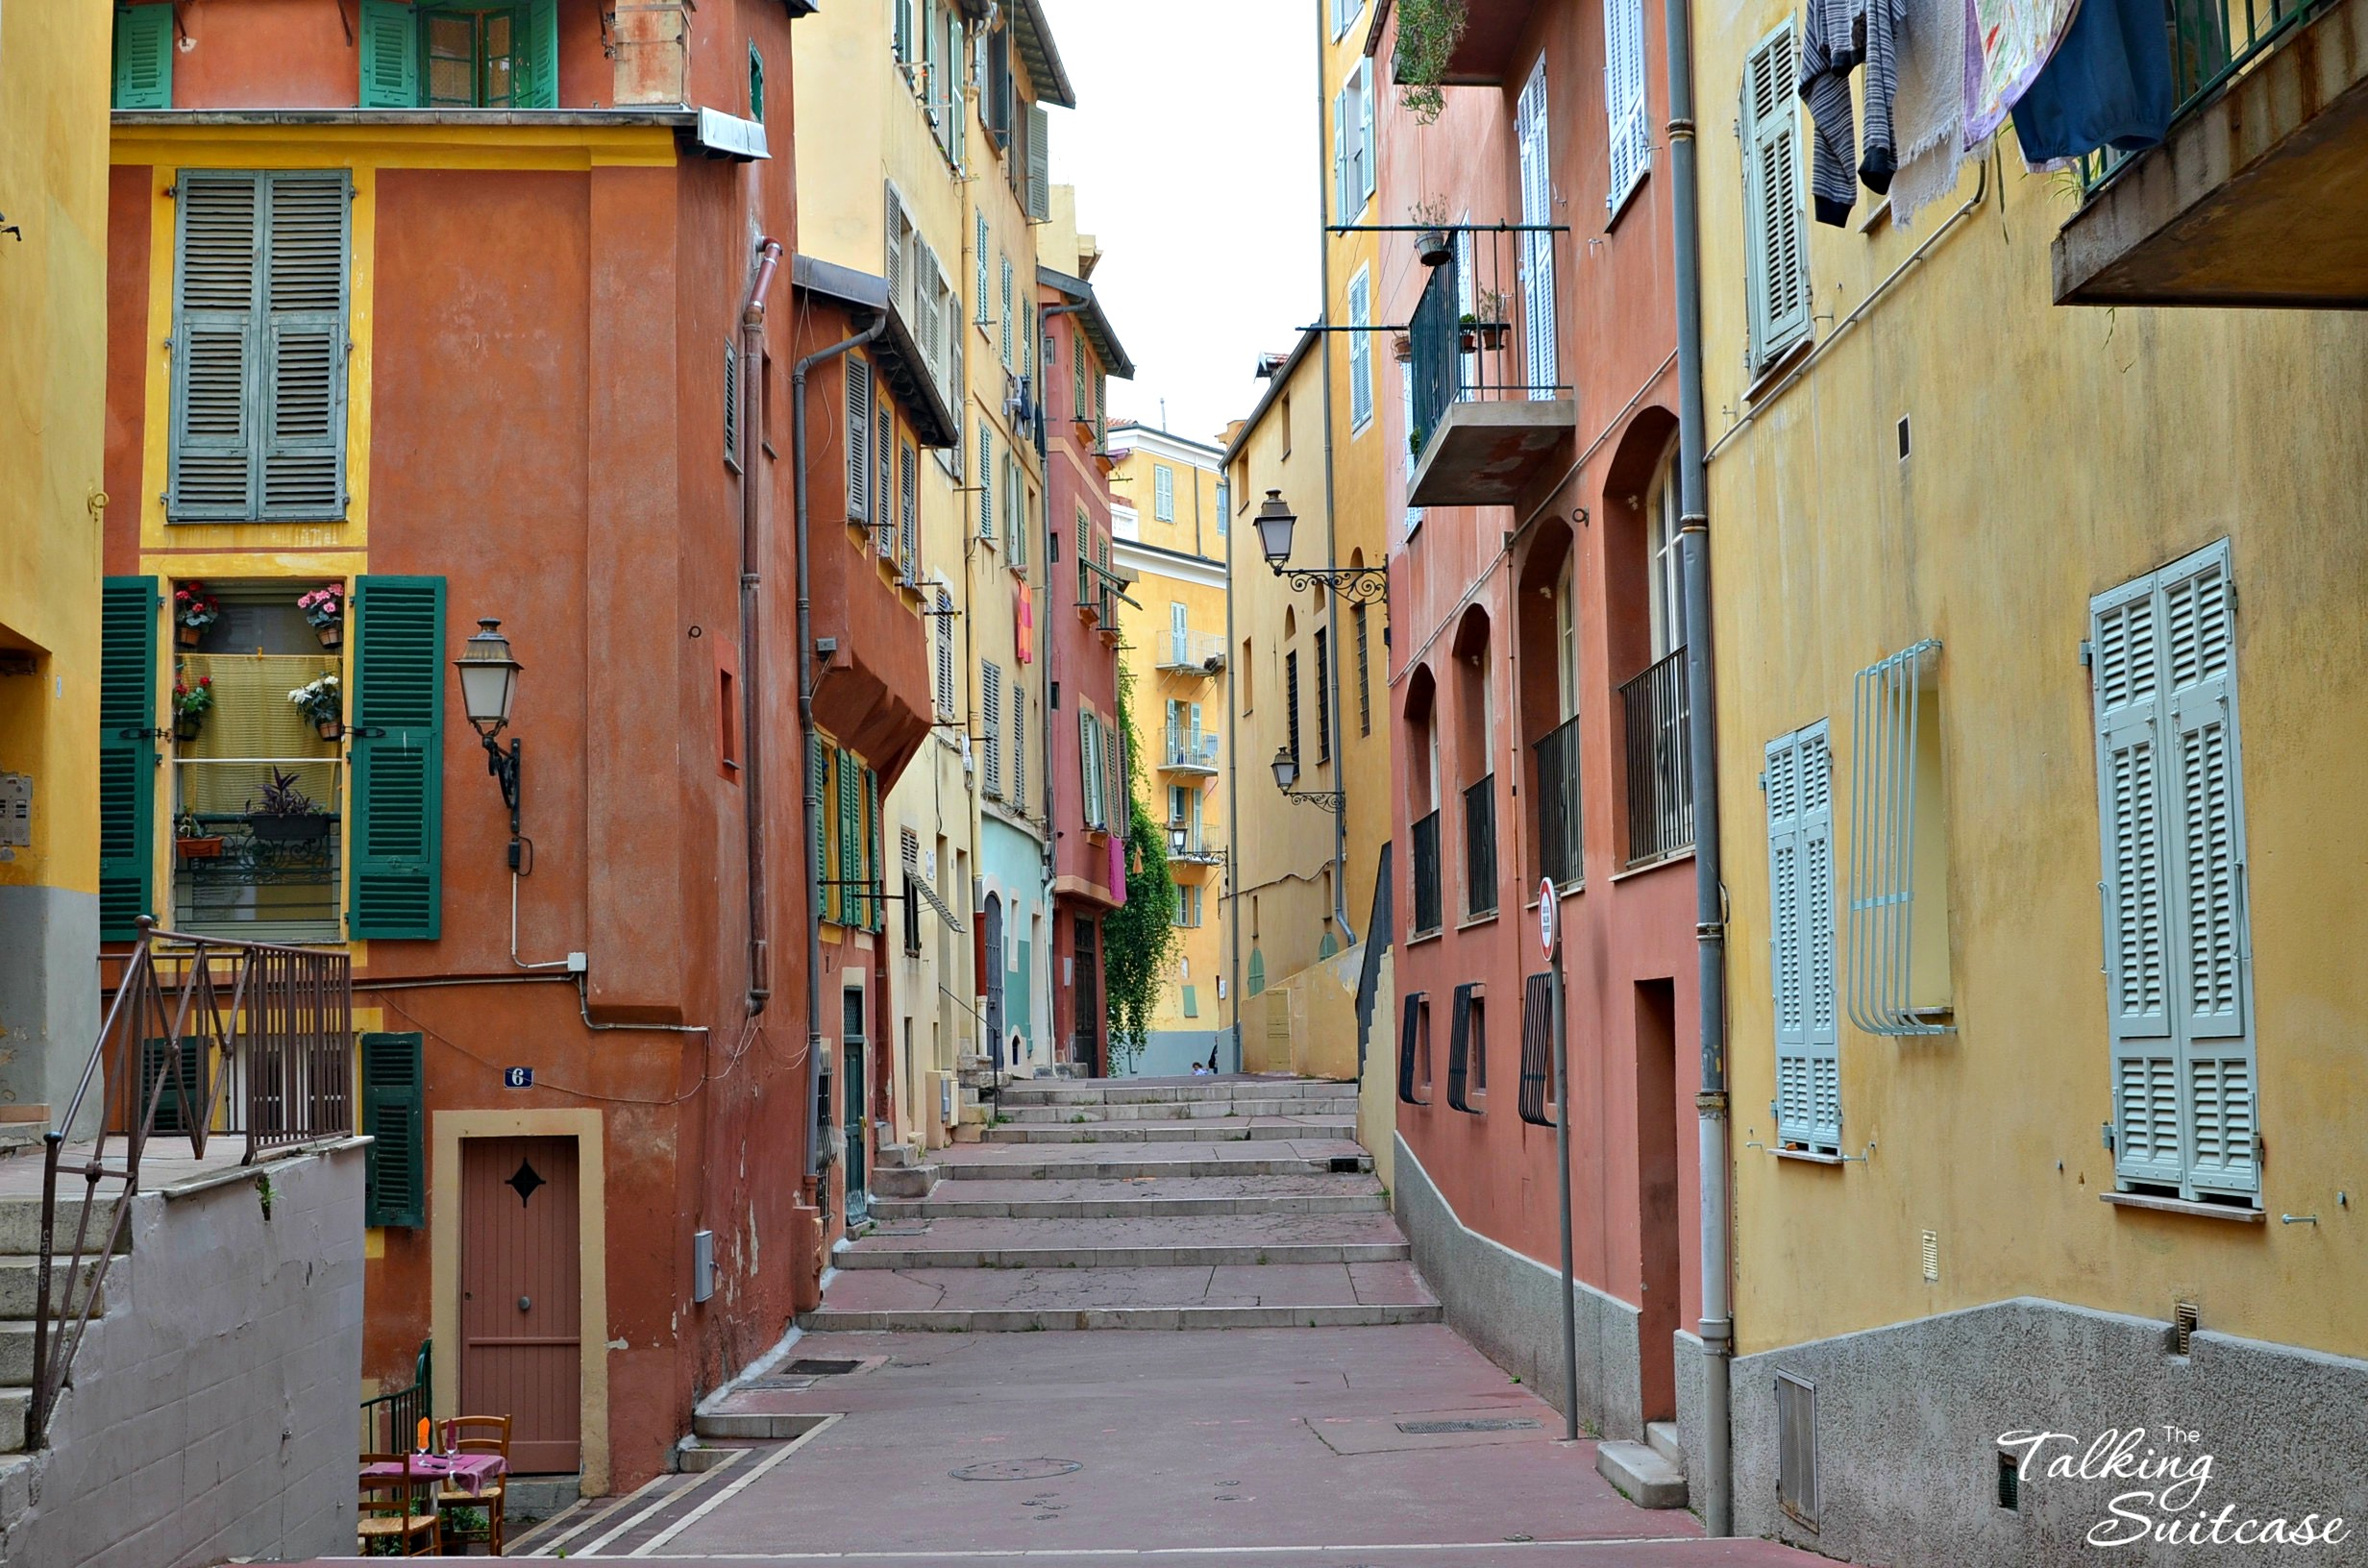 10 most instagramable spots in nice france photos to inspire your visit. Black Bedroom Furniture Sets. Home Design Ideas